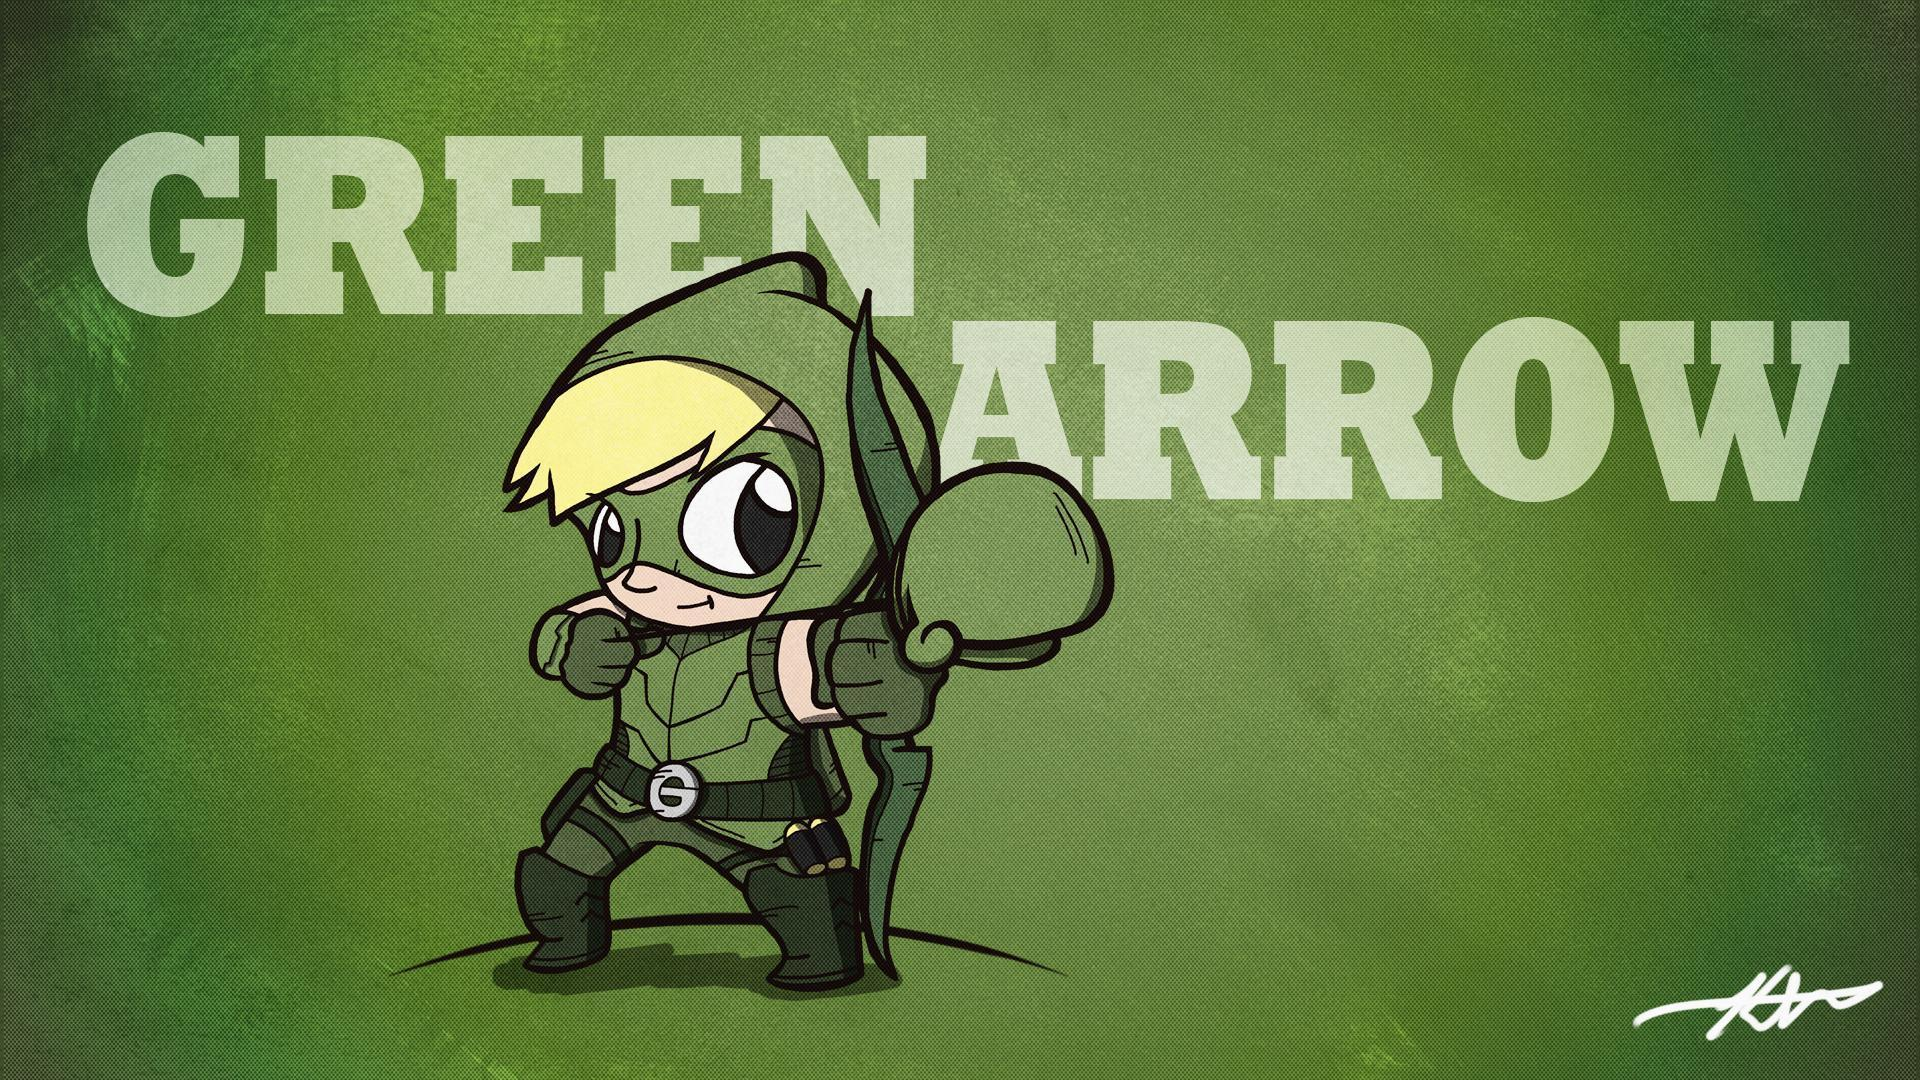 Wallpapers For > Green Arrow Wallpapers 1920x1080